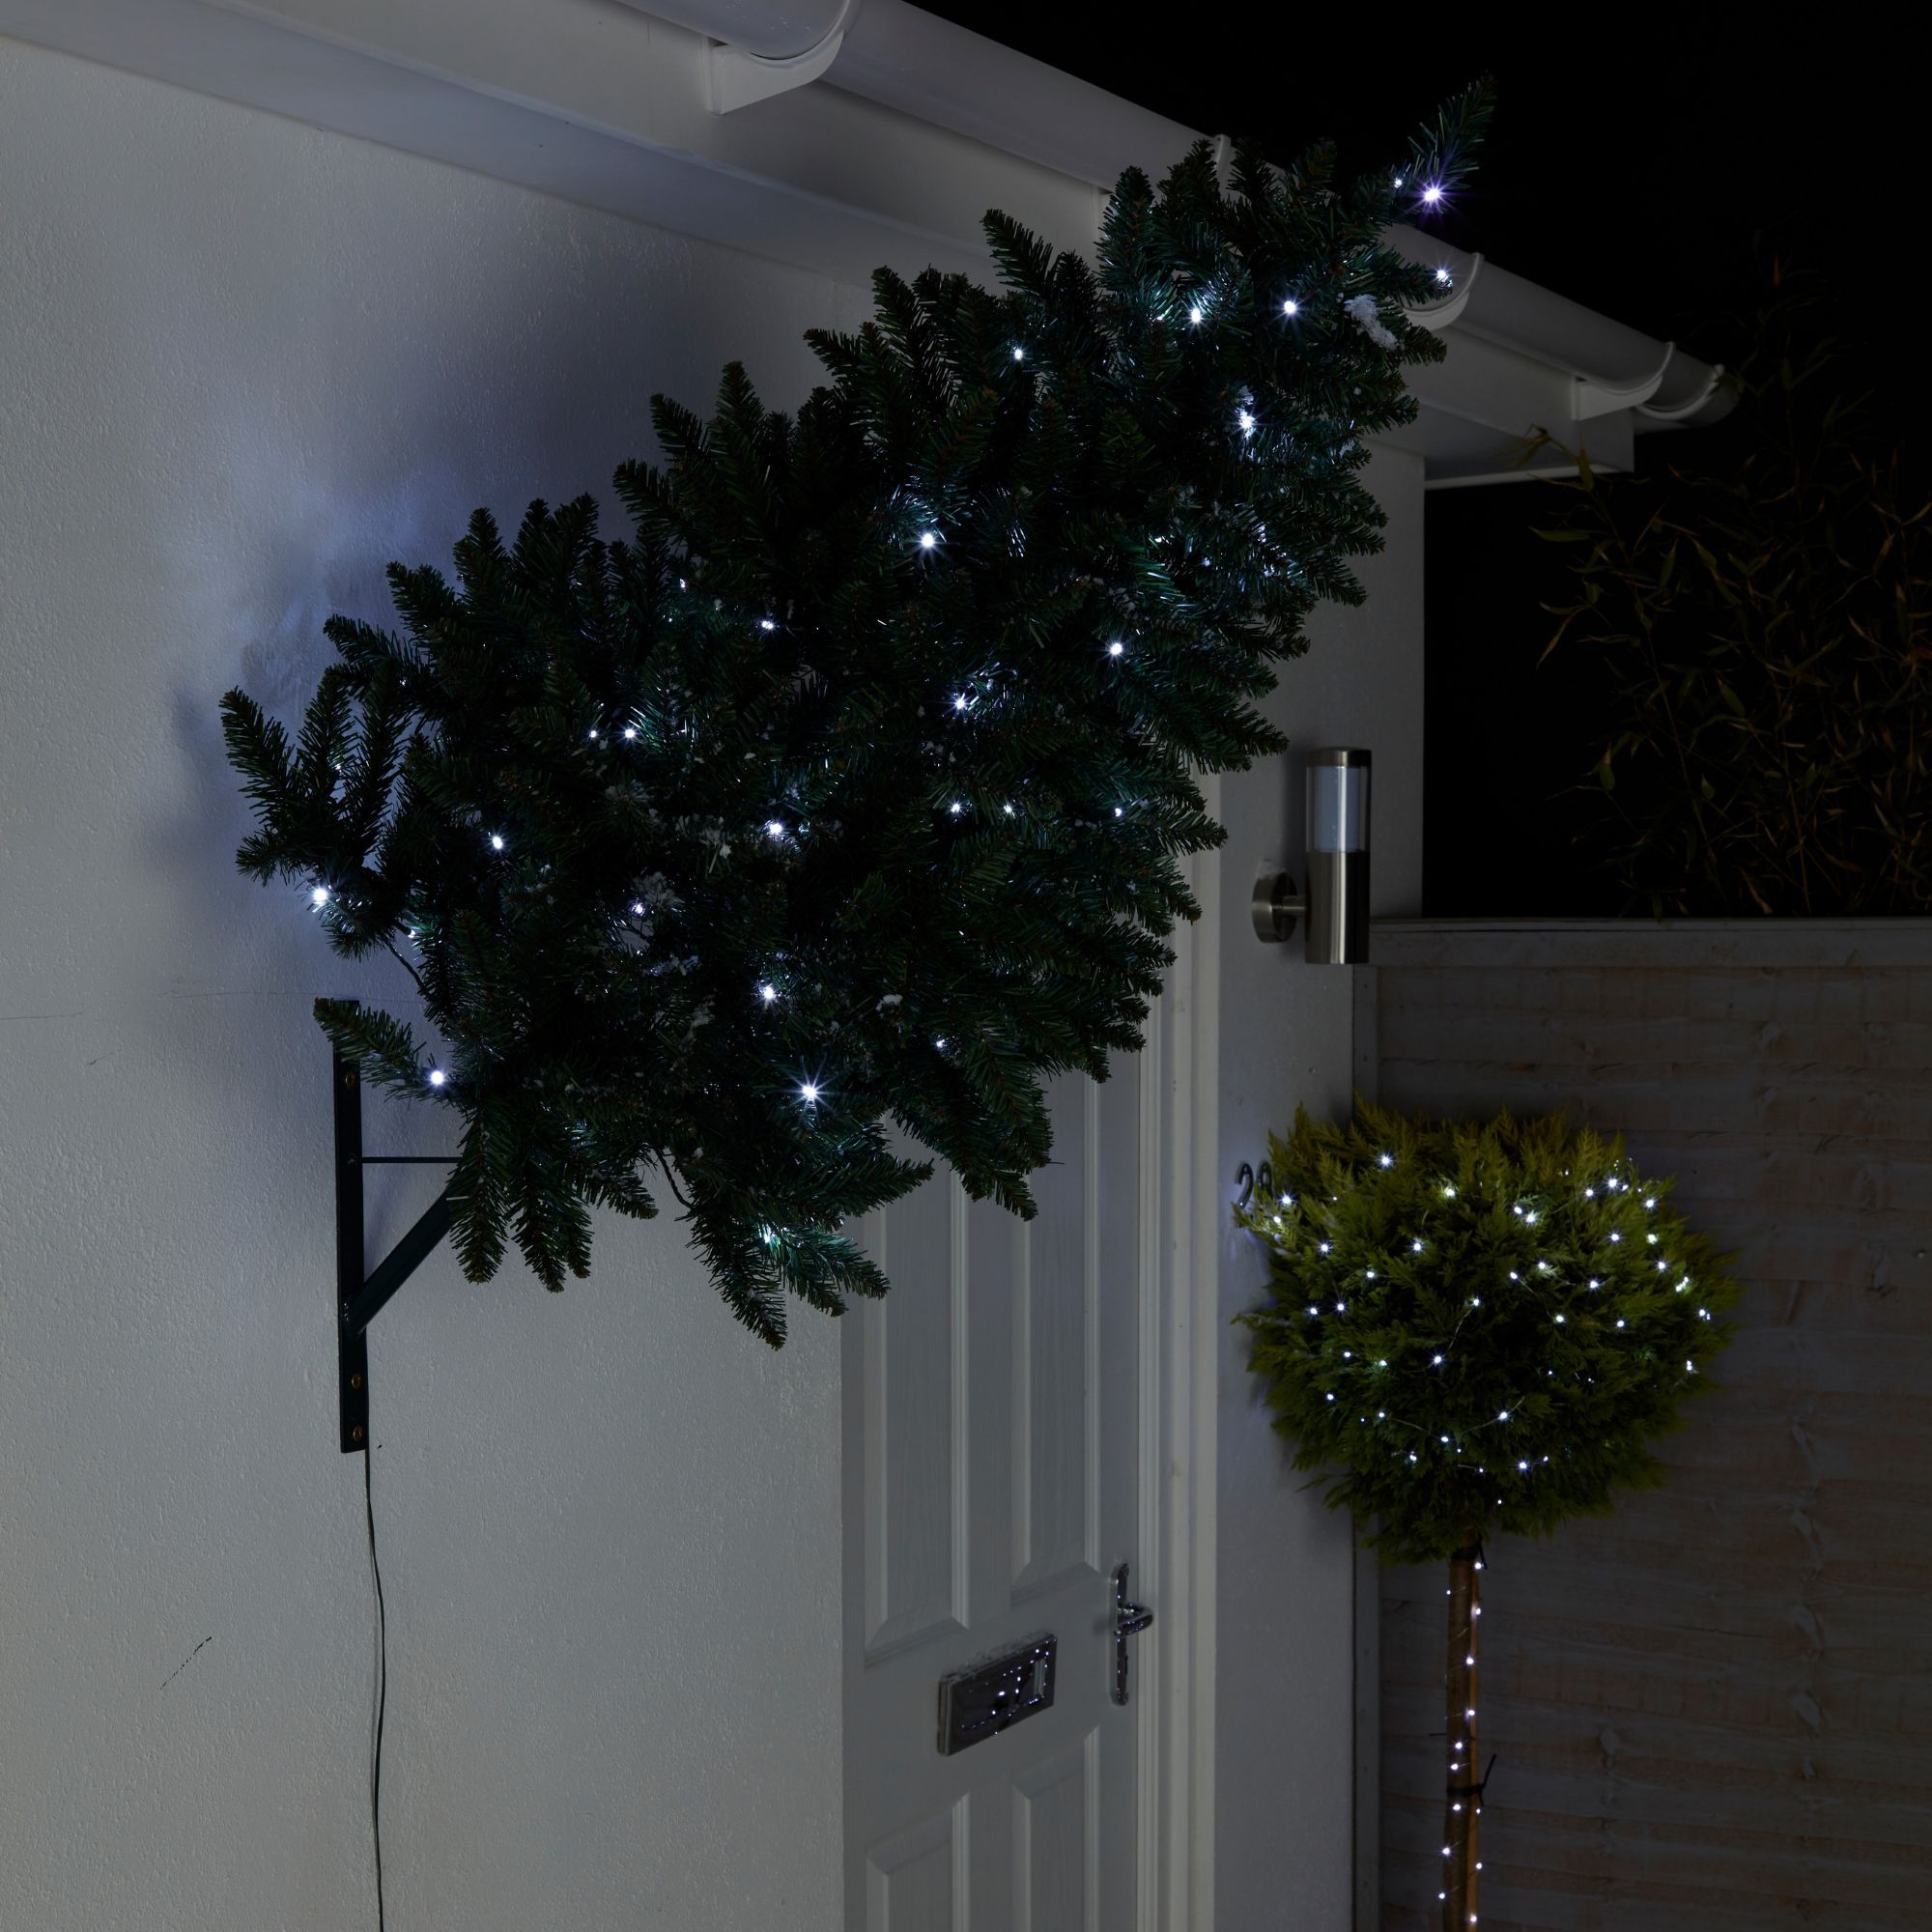 3ft Christmas Trees Artificial: 3ft Wall Mounted Pre-lit Artificial Christmas Tree